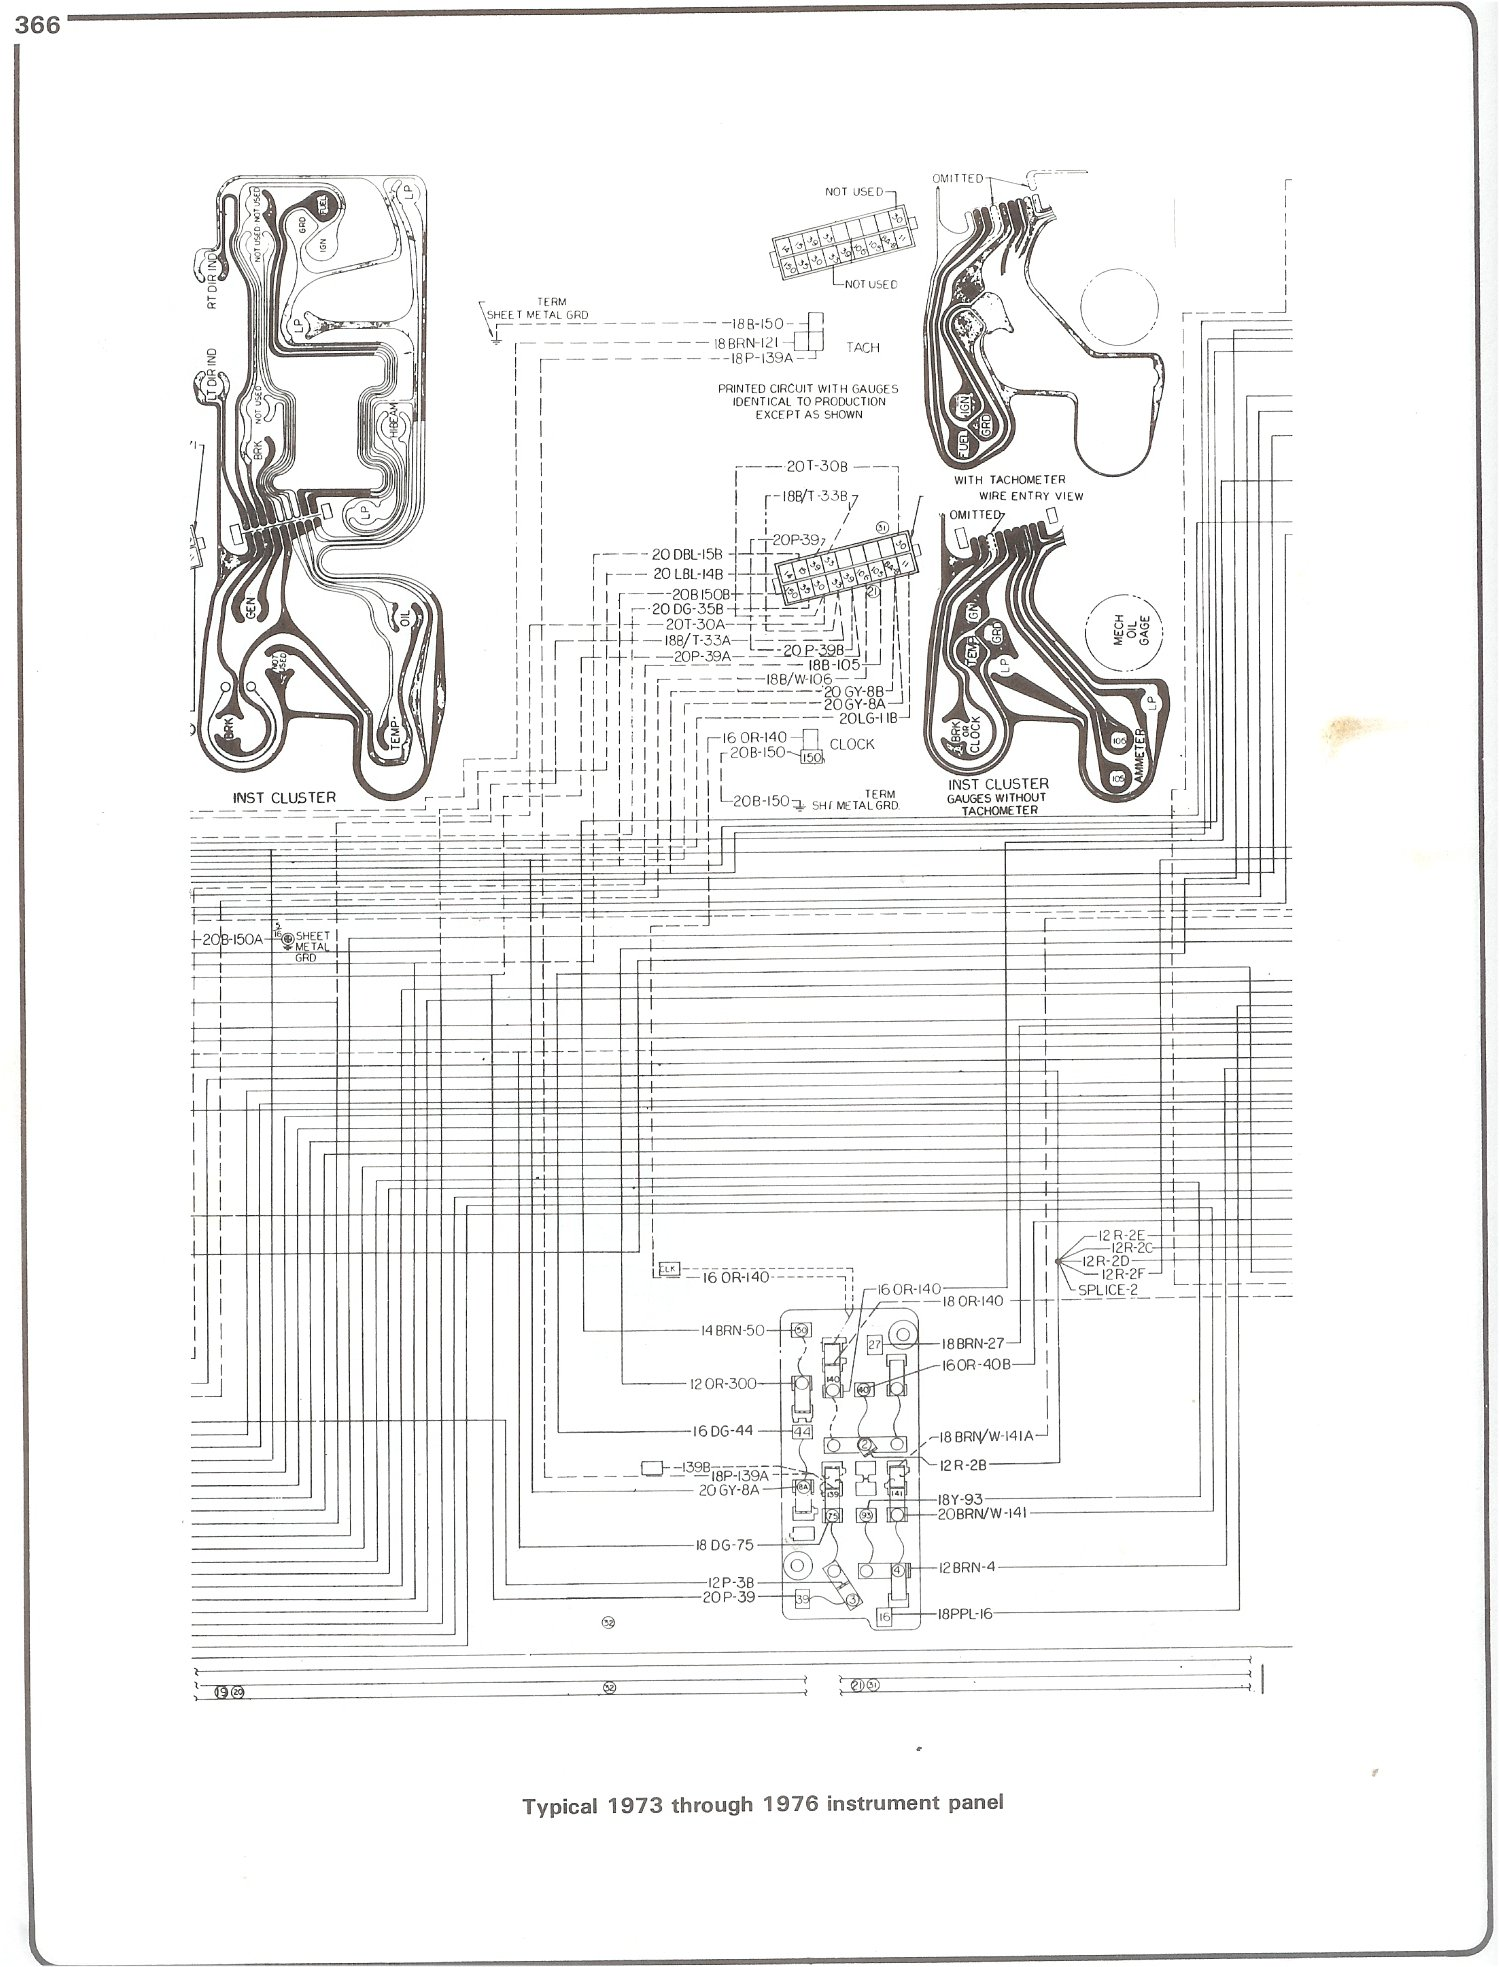 73 76_instrument complete 73 87 wiring diagrams 2000 chevy silverado 1500 wiring diagram at aneh.co